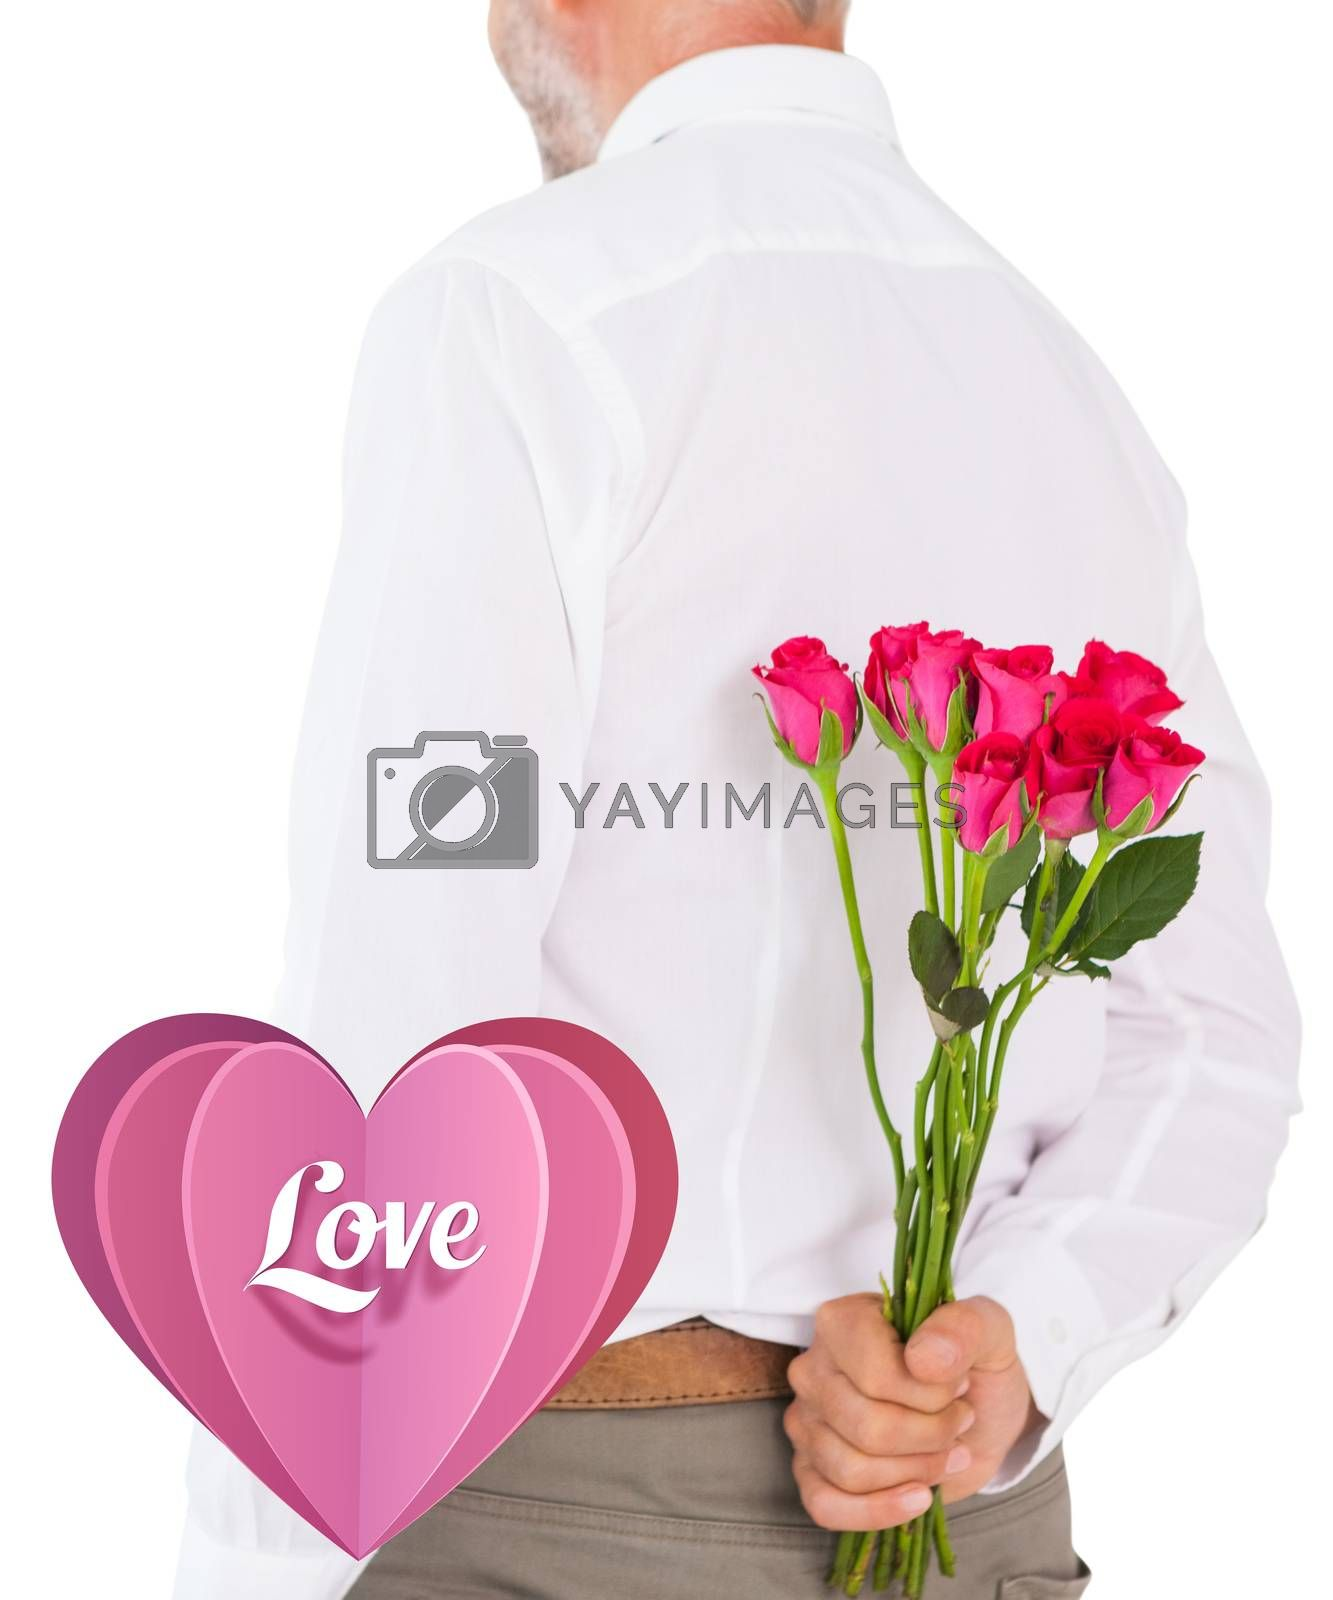 Man holding bouquet of roses behind back against love heart